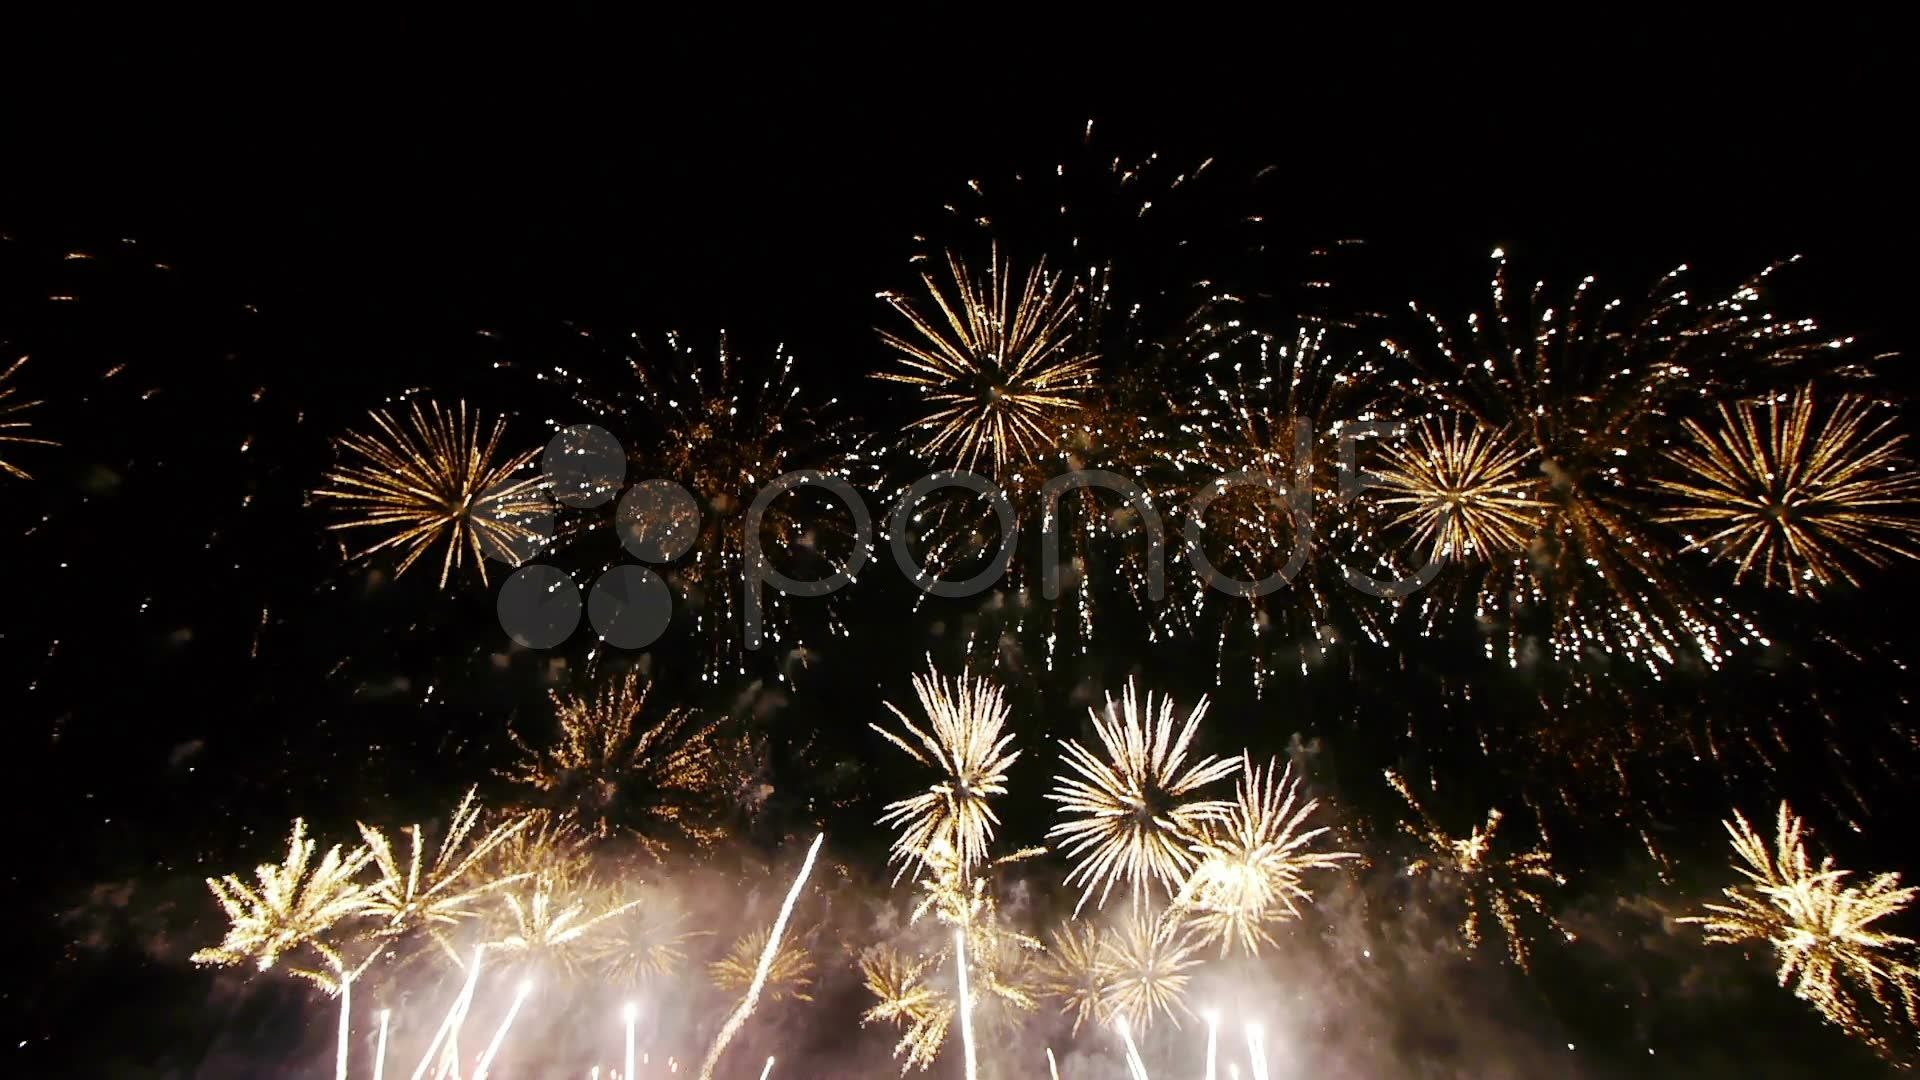 Hd Fireworks Wide Angle View Stock Footage Wide Fireworks Hd Angle Wide Angle Fireworks Views